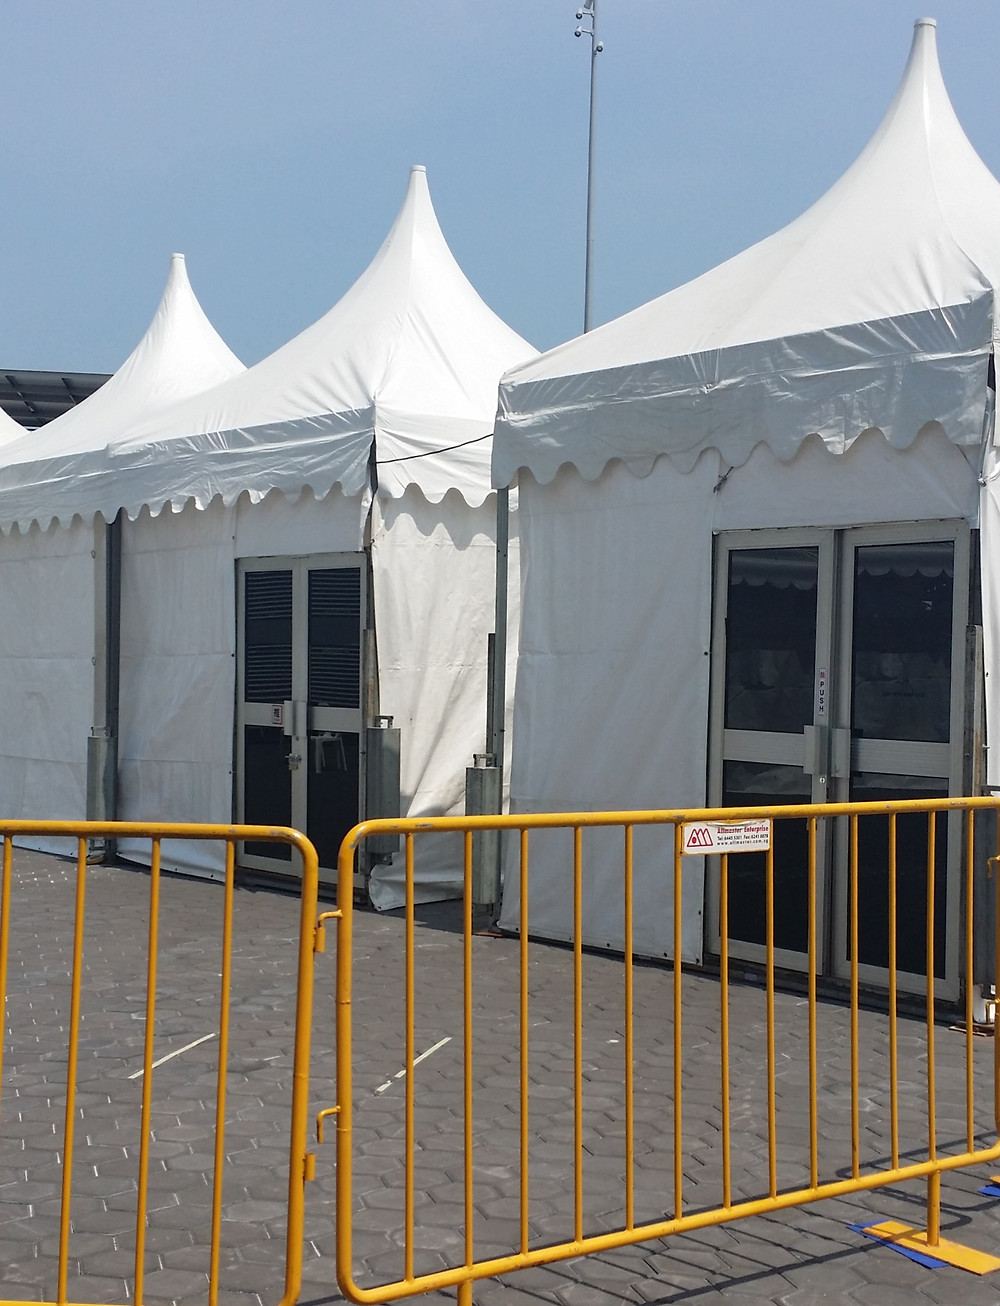 Full-Covered Gazebos are Available too